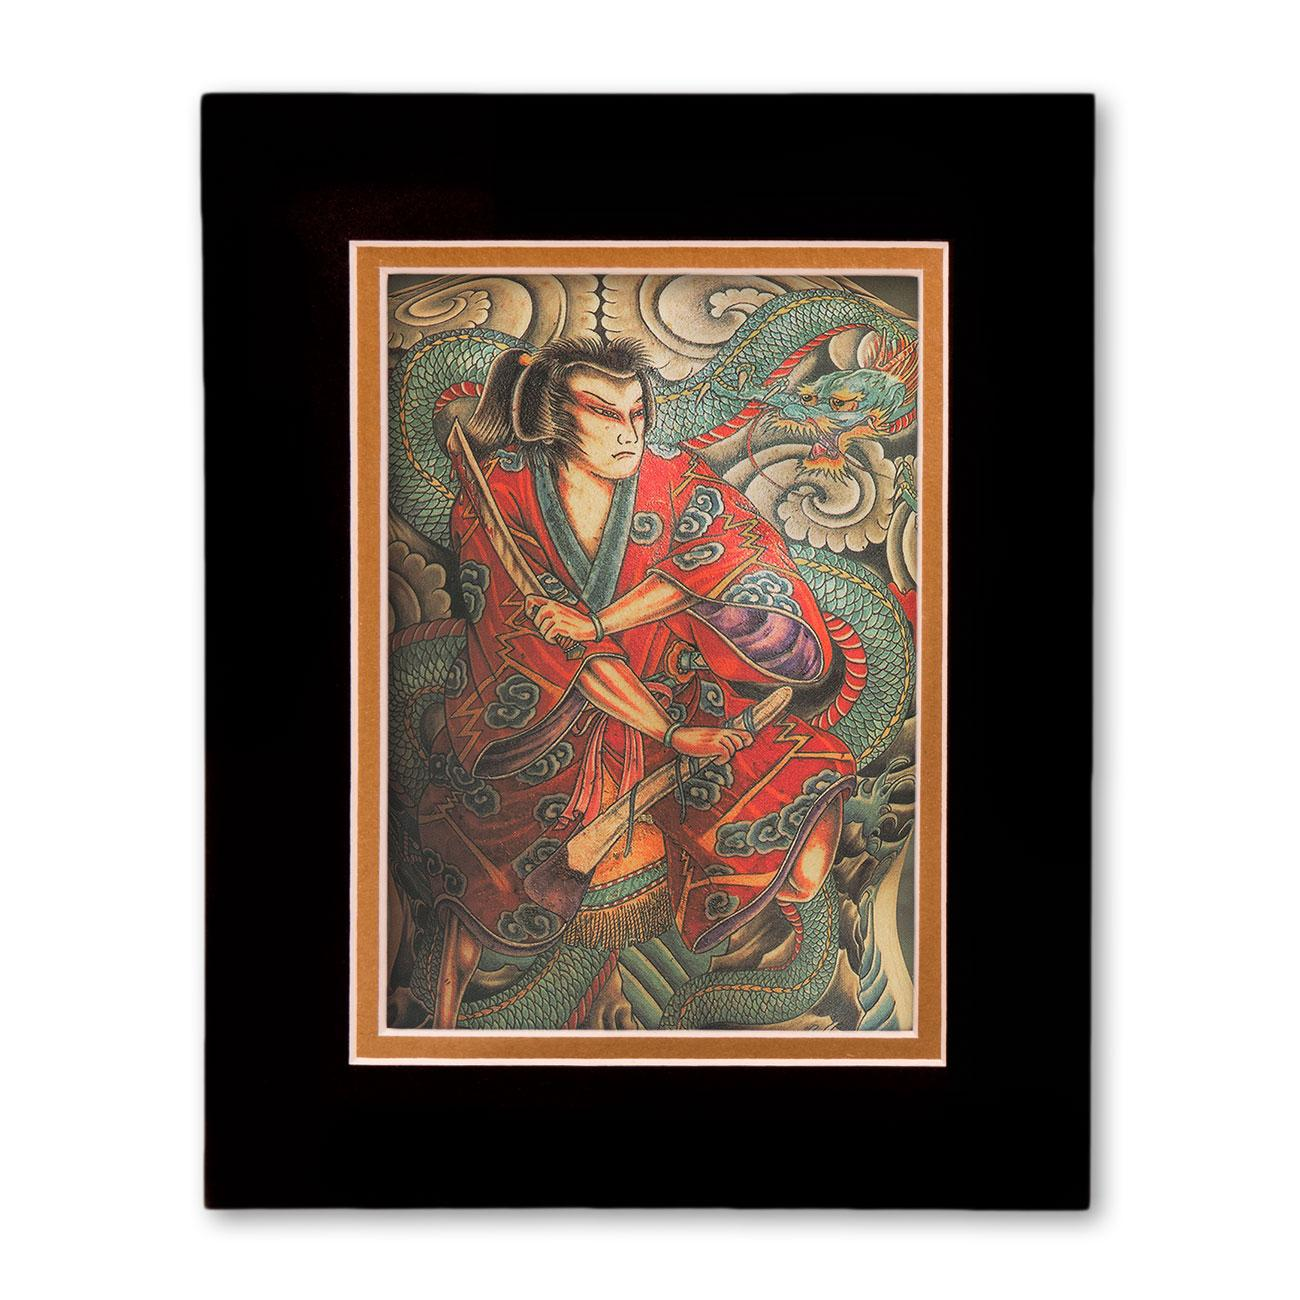 Homage to hori yoshi ii gift set tattoo art by john joyes for Gifts for tattoo artist